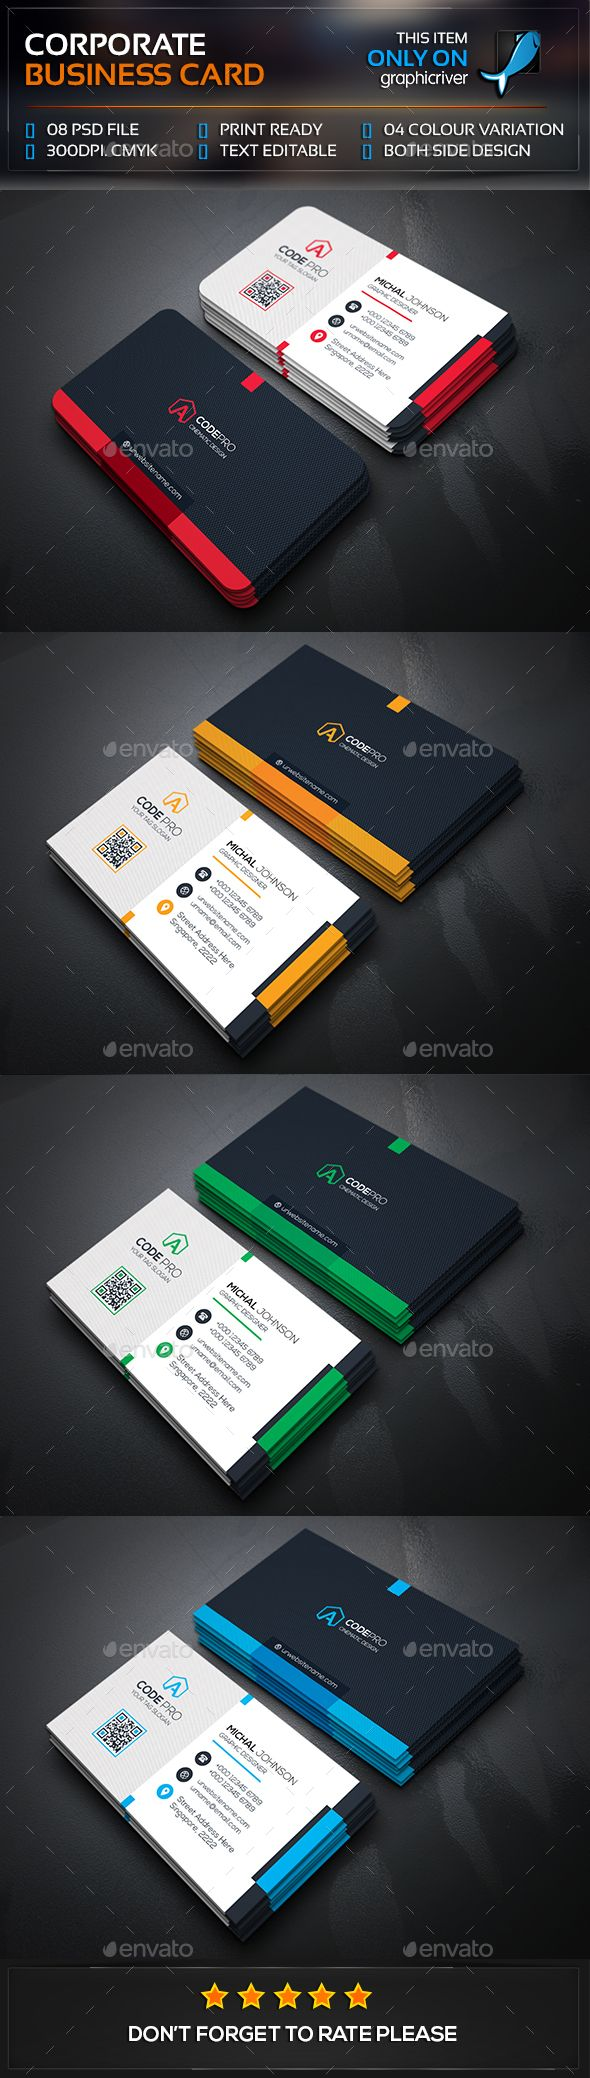 Mega Corporate Business Card